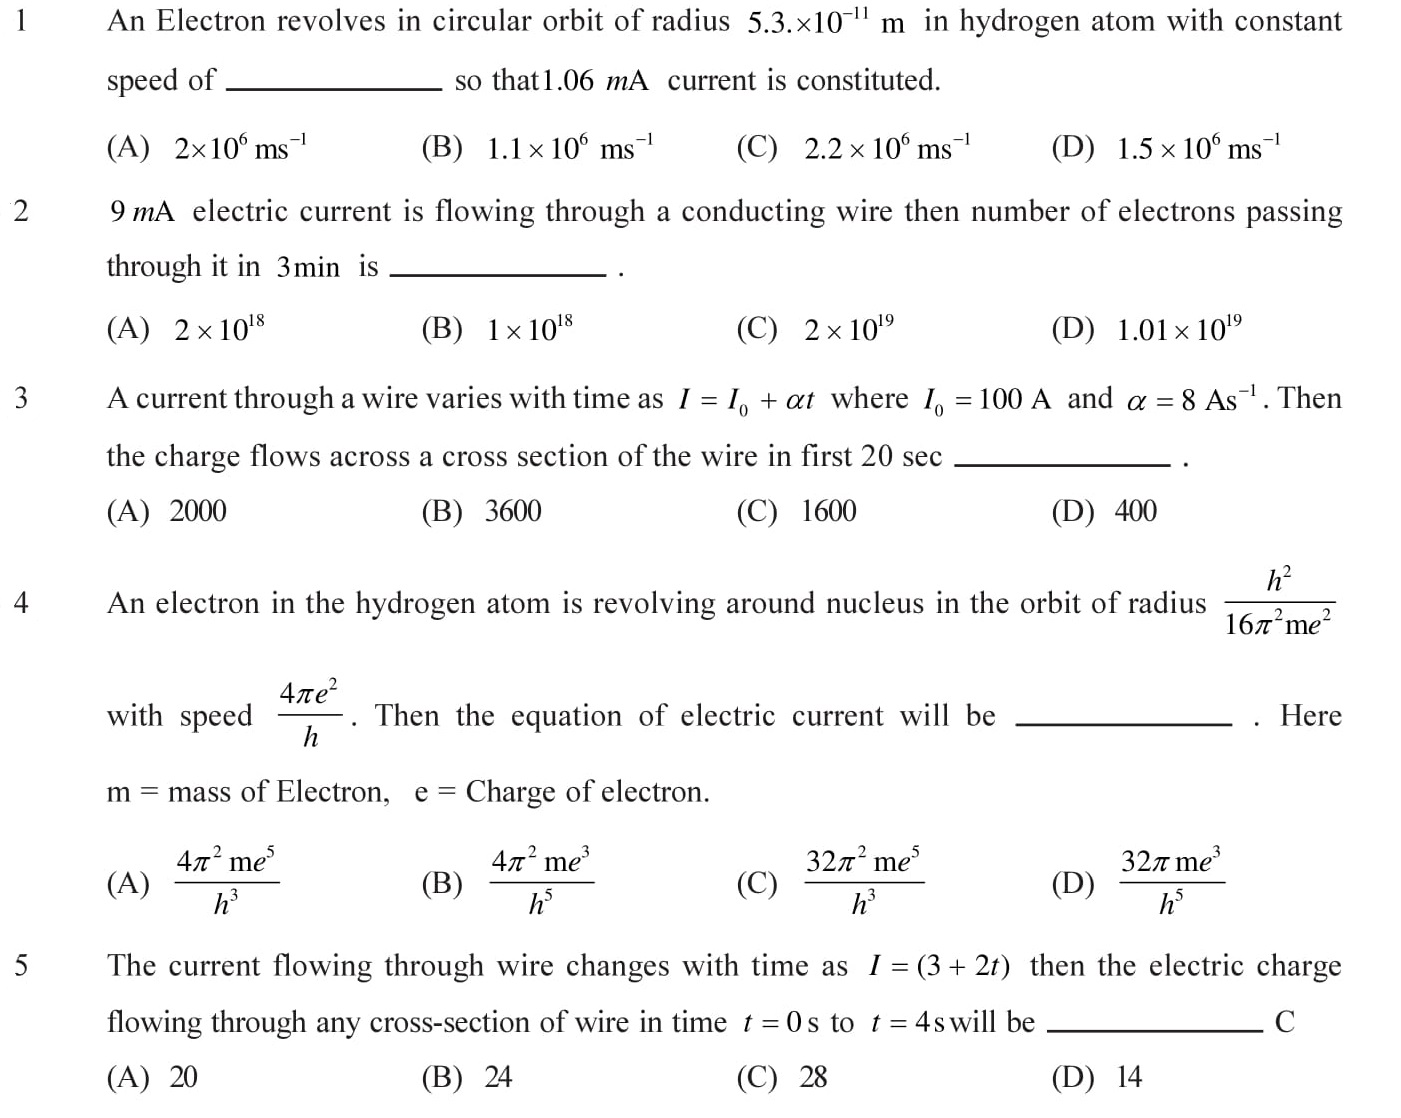 NEET-JEE-IIT-Questions-Current-Electricity-Topic-1